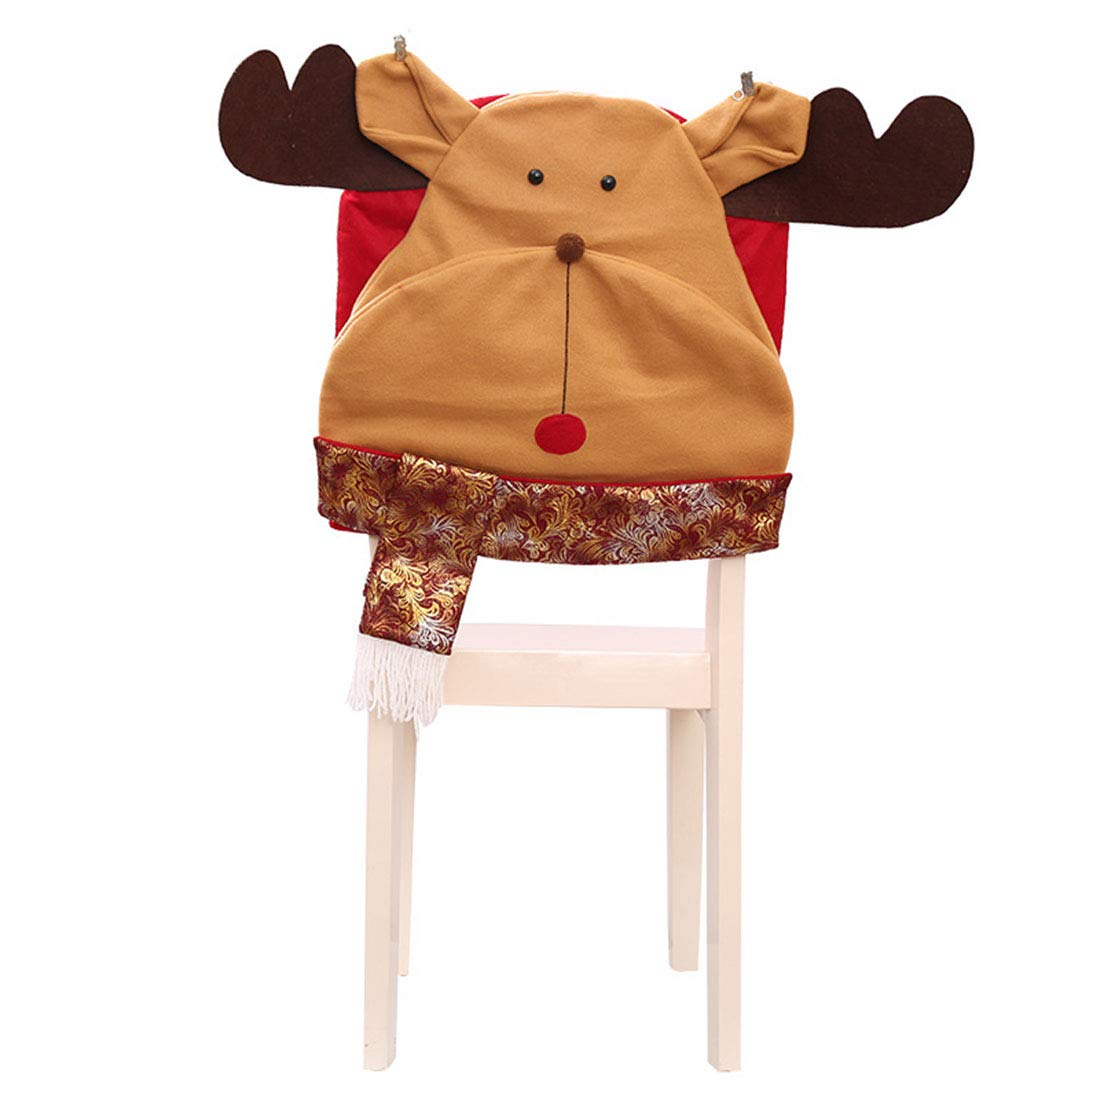 Bverionant Chair Cover Christmas Santa Claus Dining Room Xmas Holiday Decoration Ornament